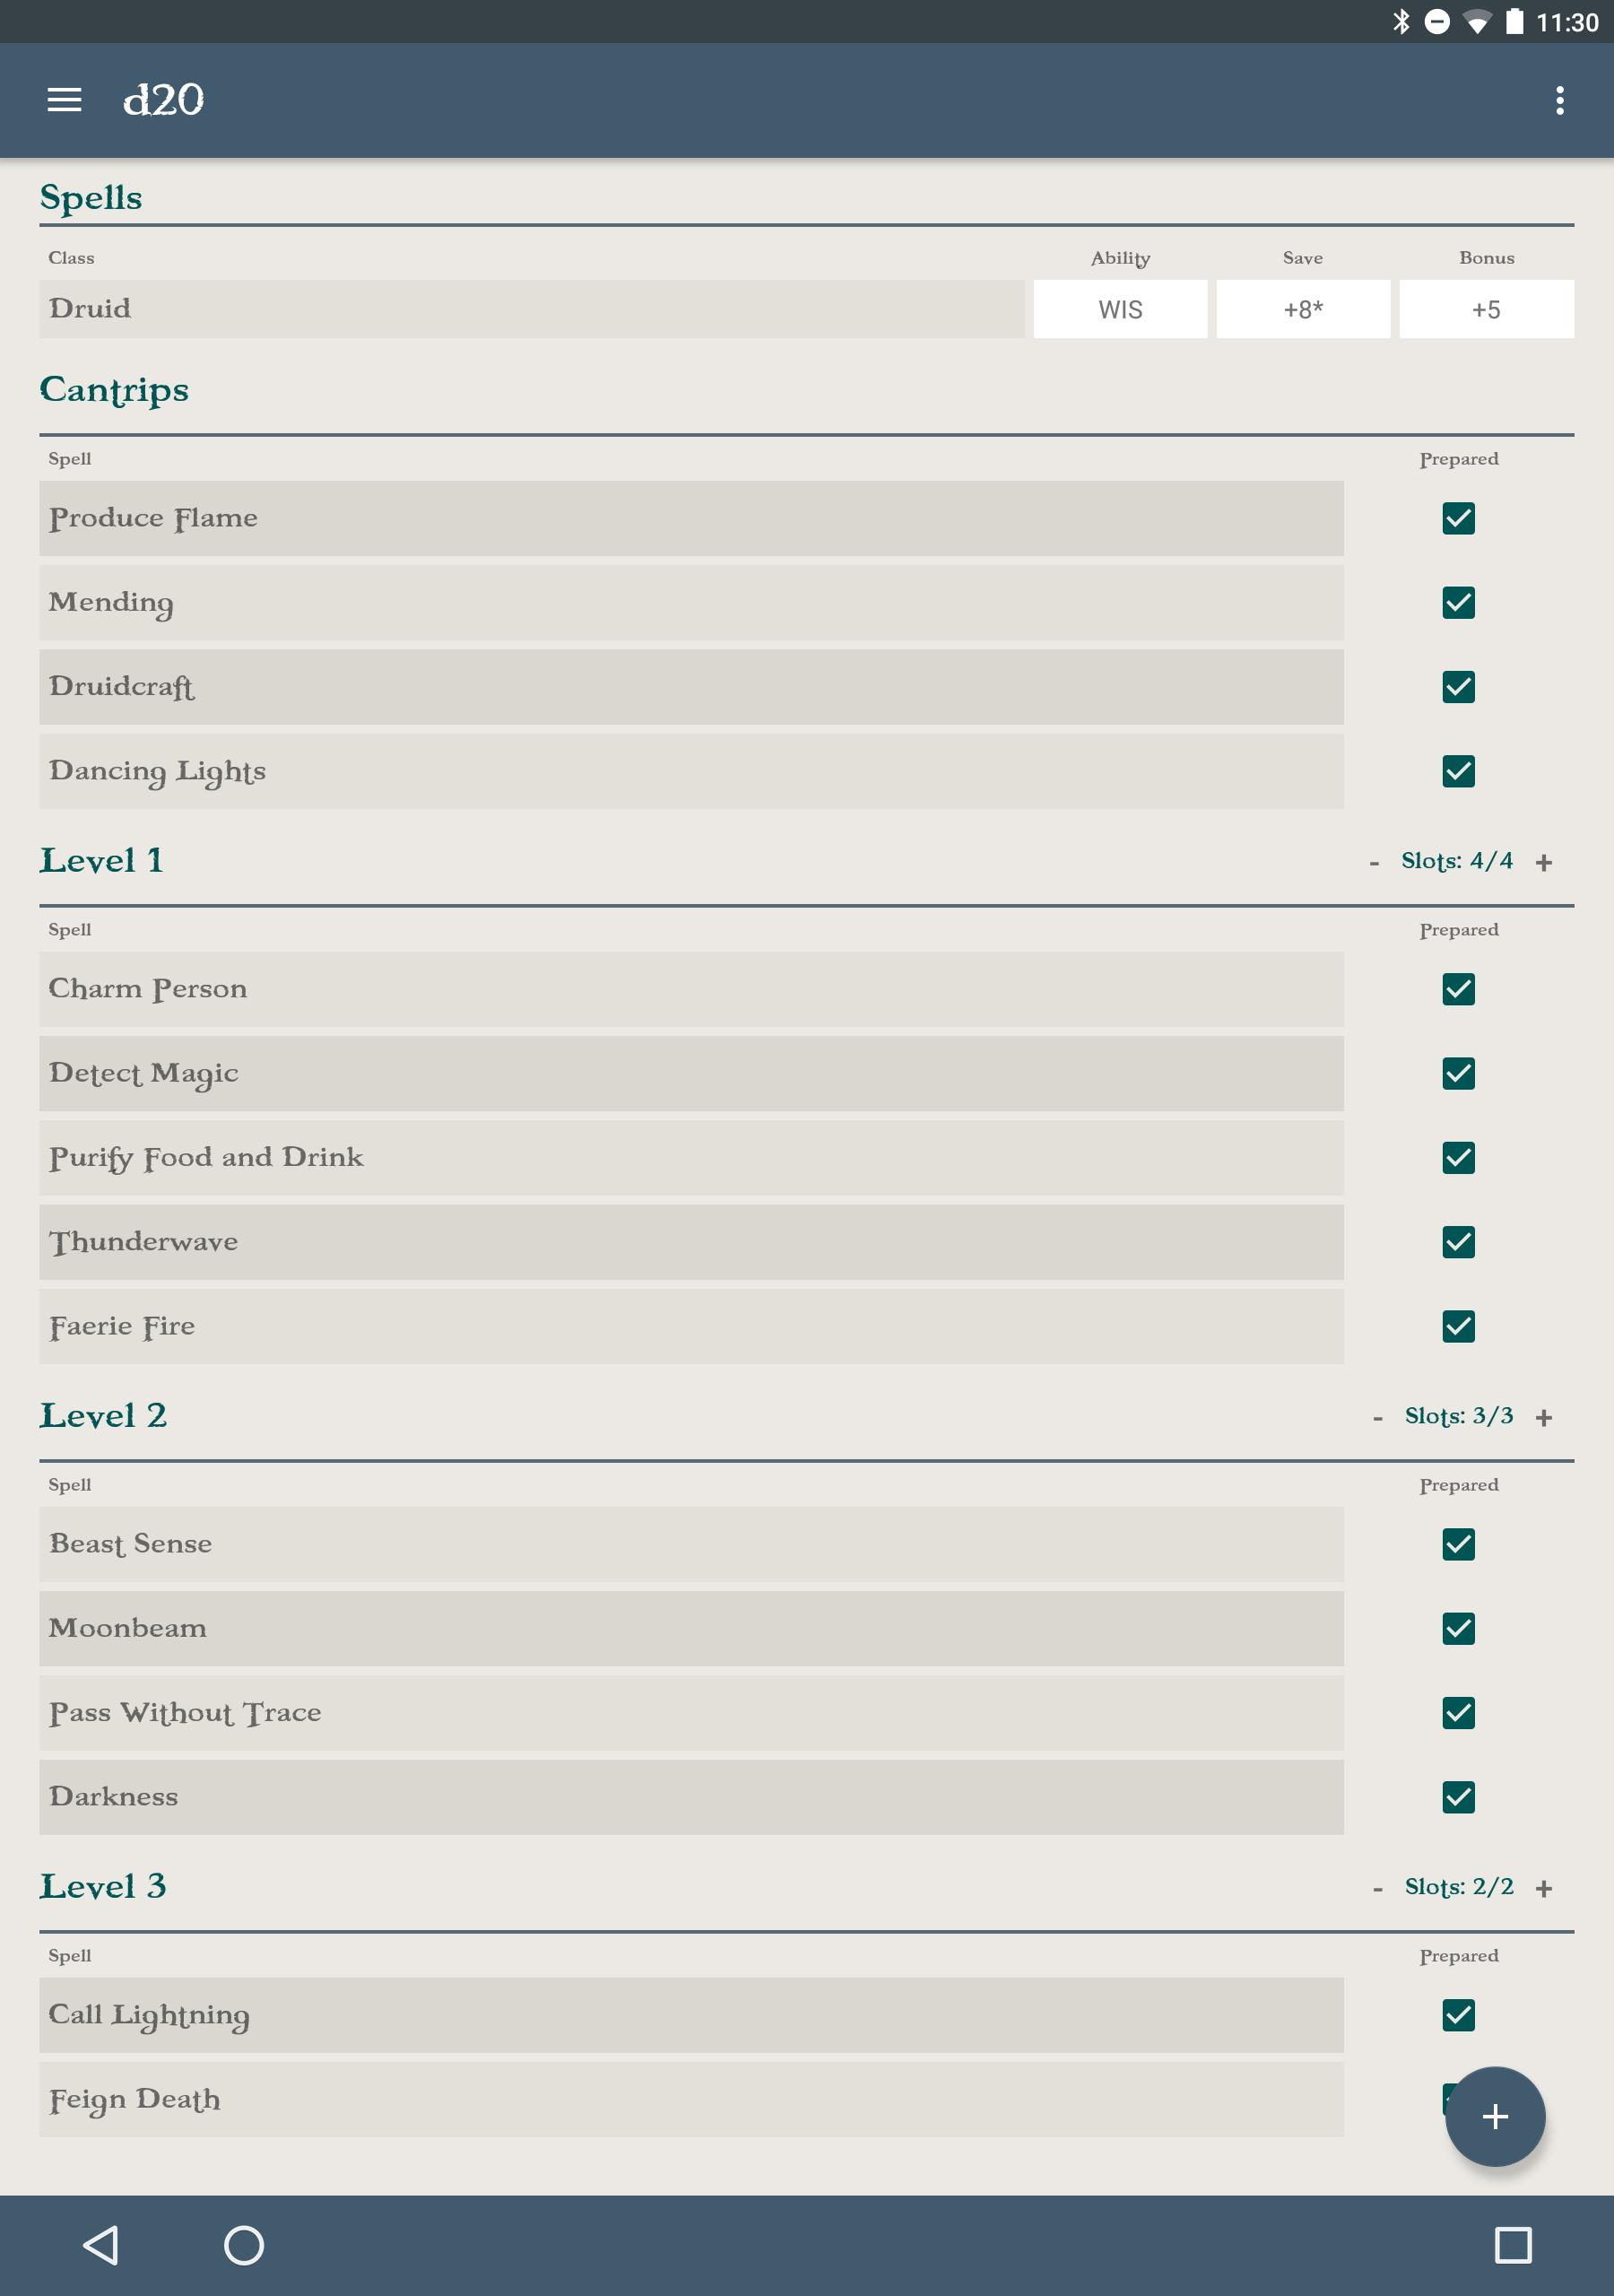 d20 5e Character Sheet for Android - APK Download